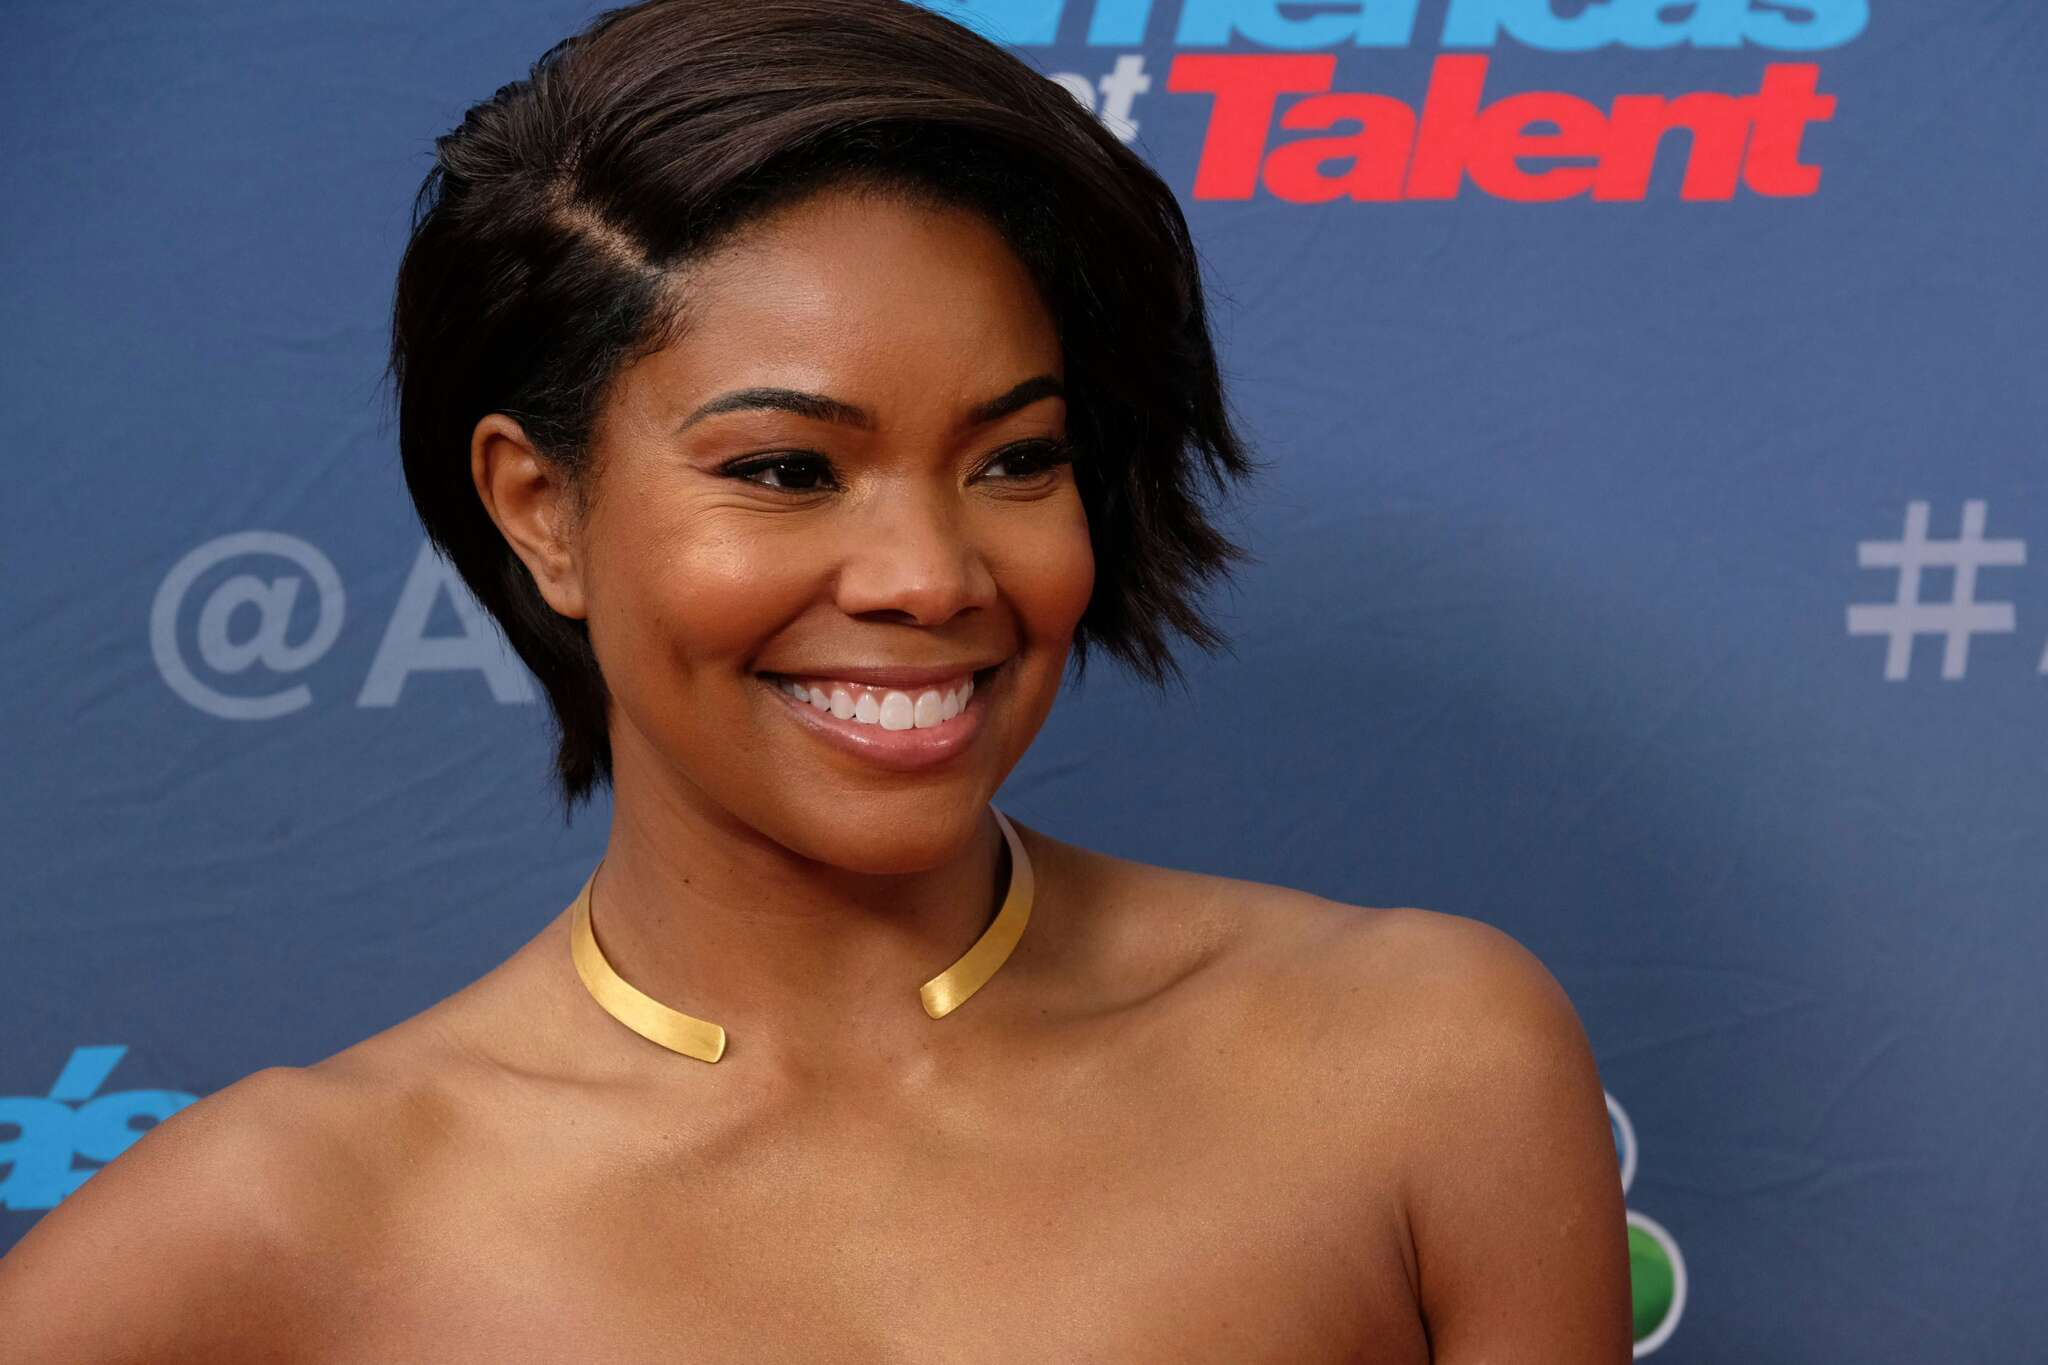 Gabrielle Union's Video Featuring Kaavia James Makes Fans' Day